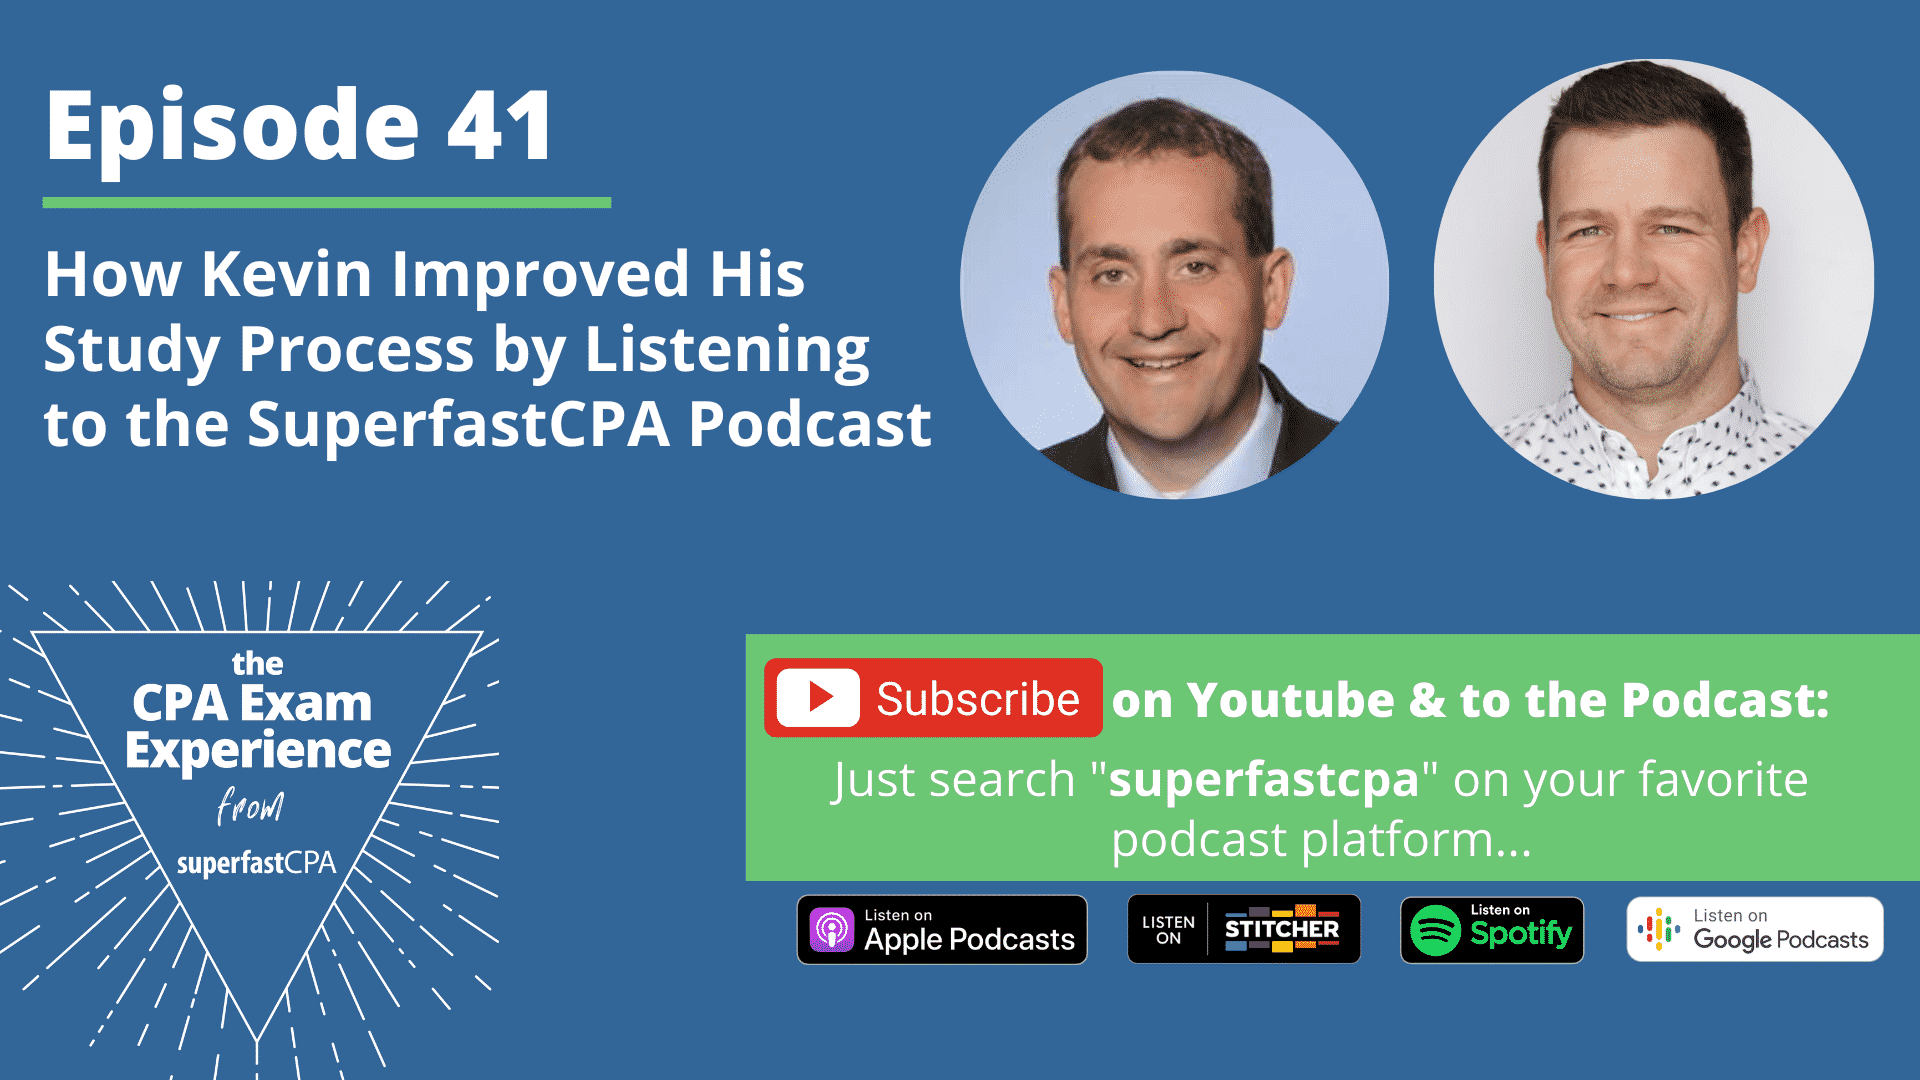 superfastcpa podcast